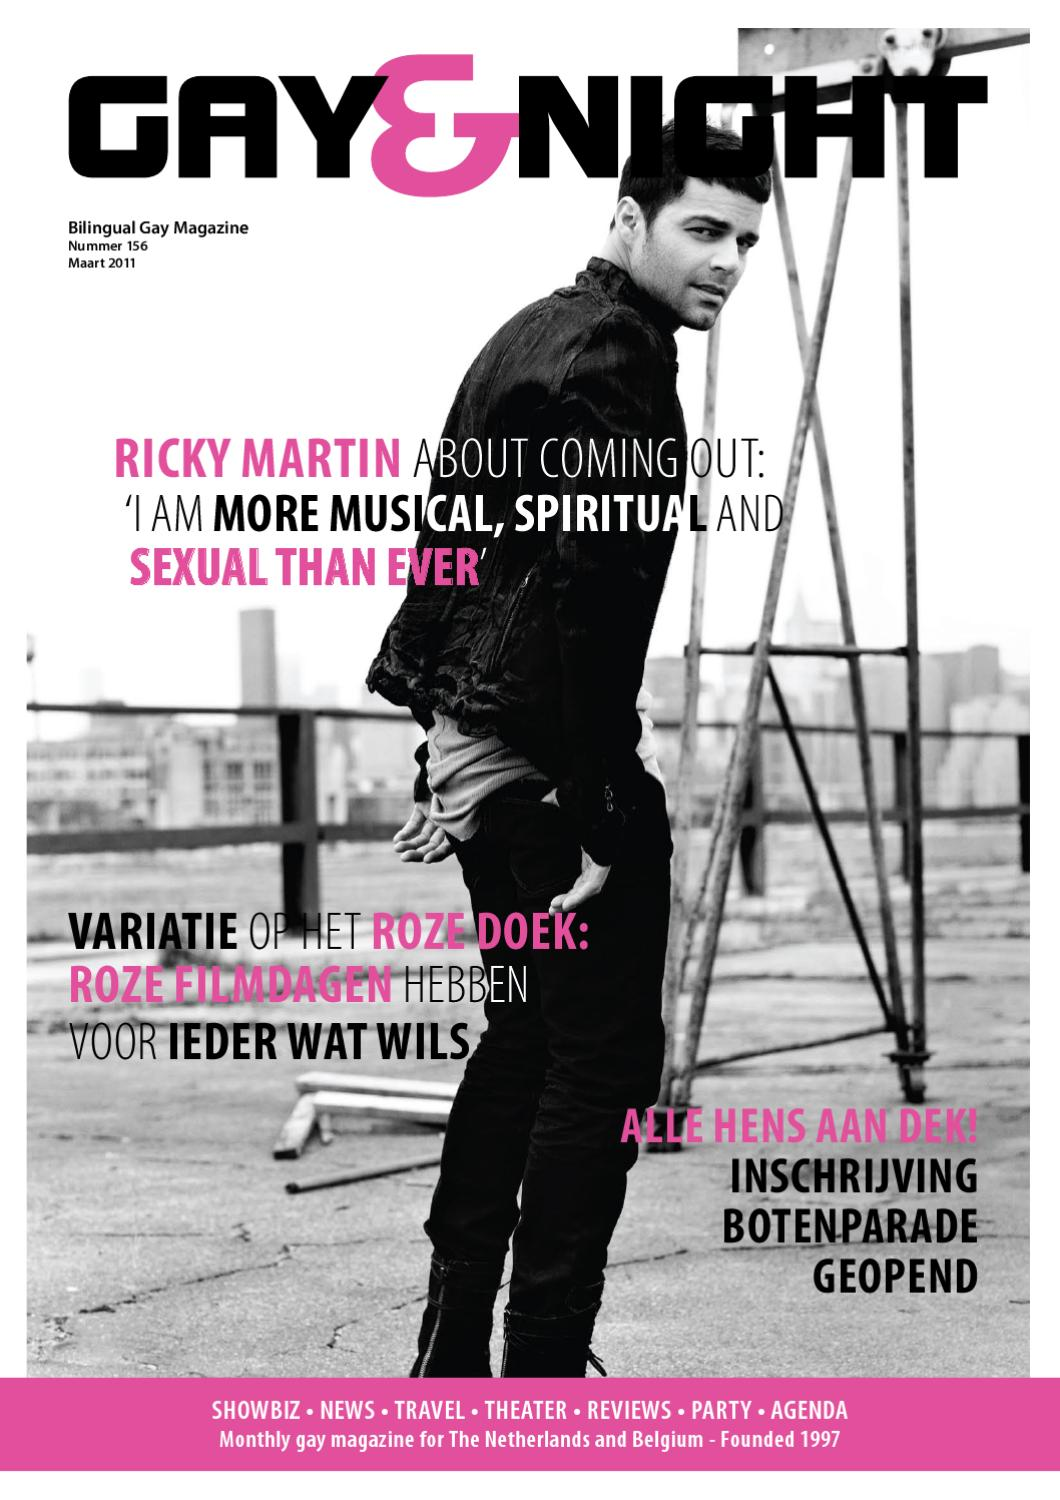 Gay&night februari 2010 by gay&night magazine   issuu